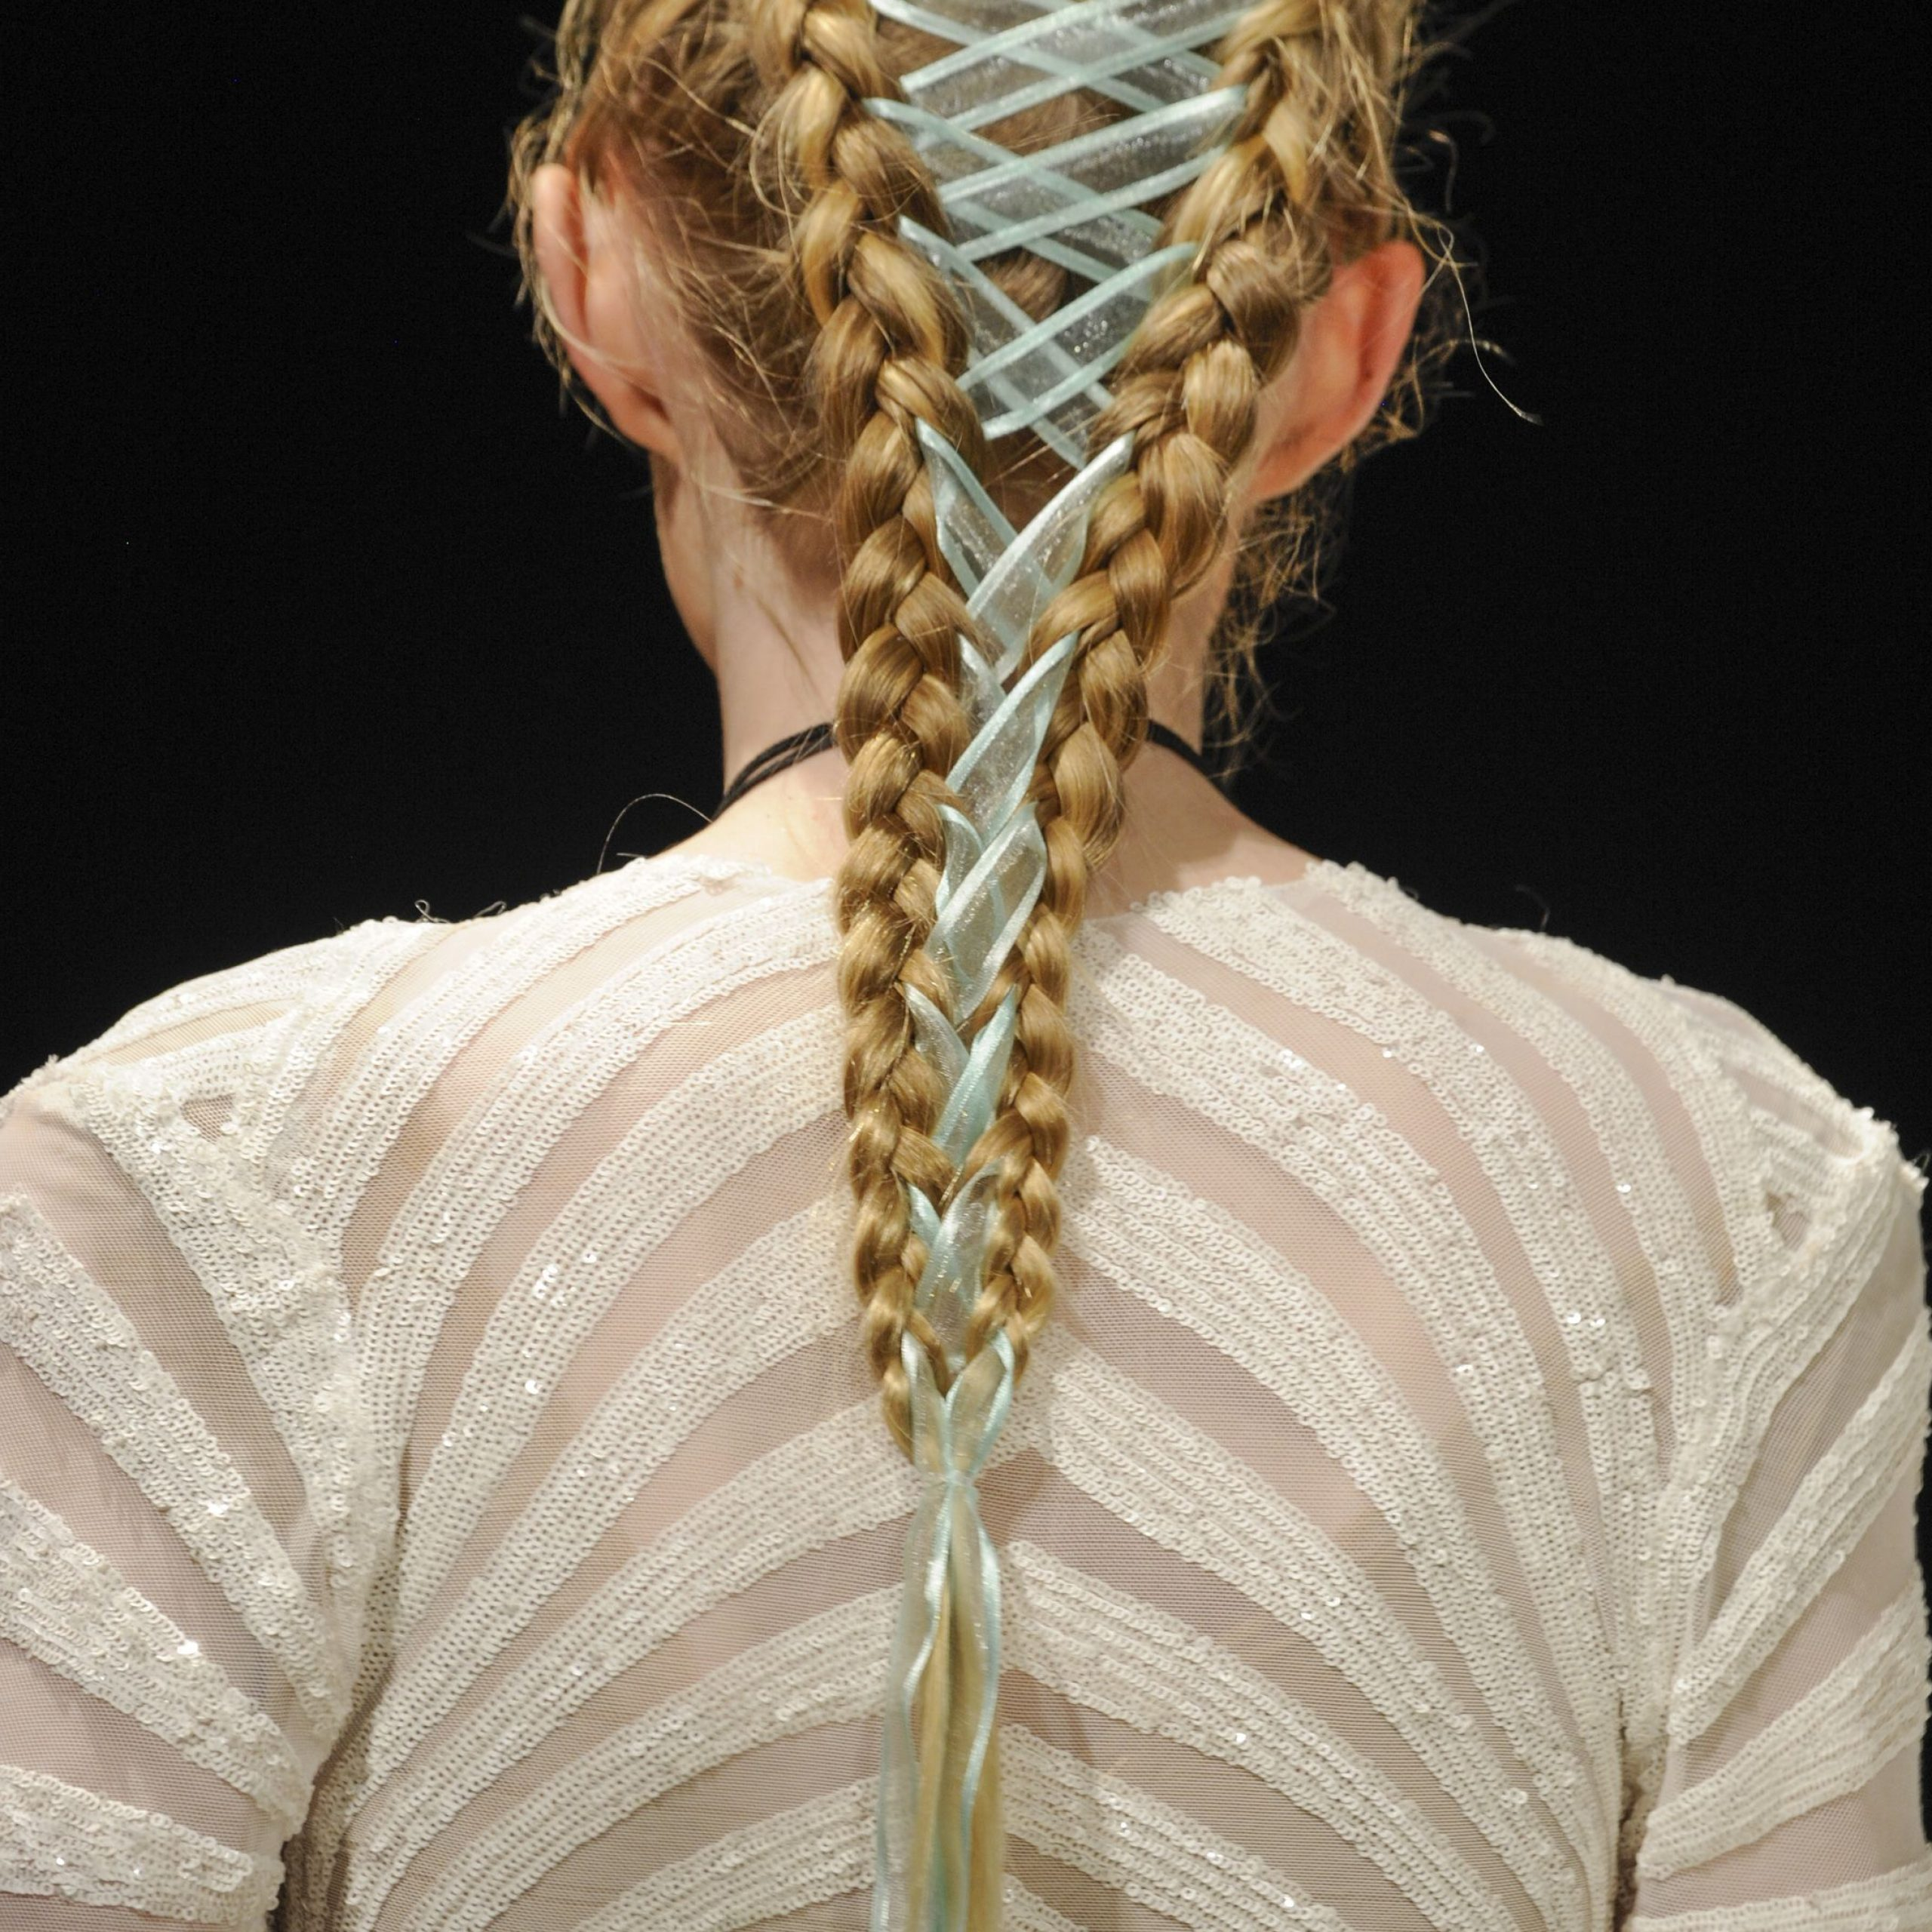 60 Easy Braided Hairstyles – Cool Braid How To's & Ideas Throughout Trendy Crisp Pulled Back Braid Hairstyles (Gallery 15 of 20)